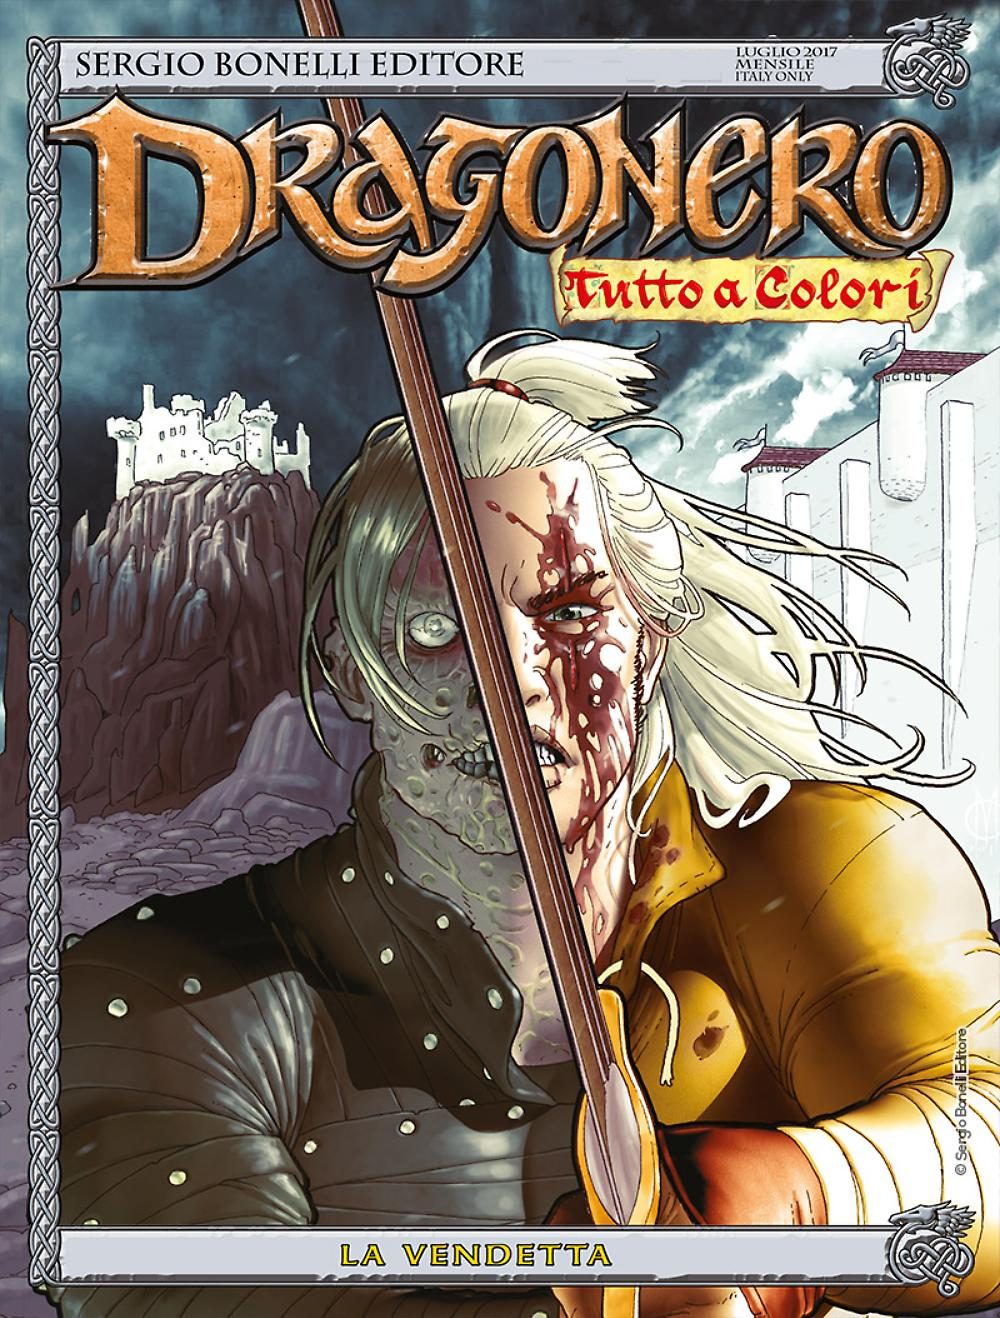 1496736247657.jpg--la_vendetta___dragonero_50_cover